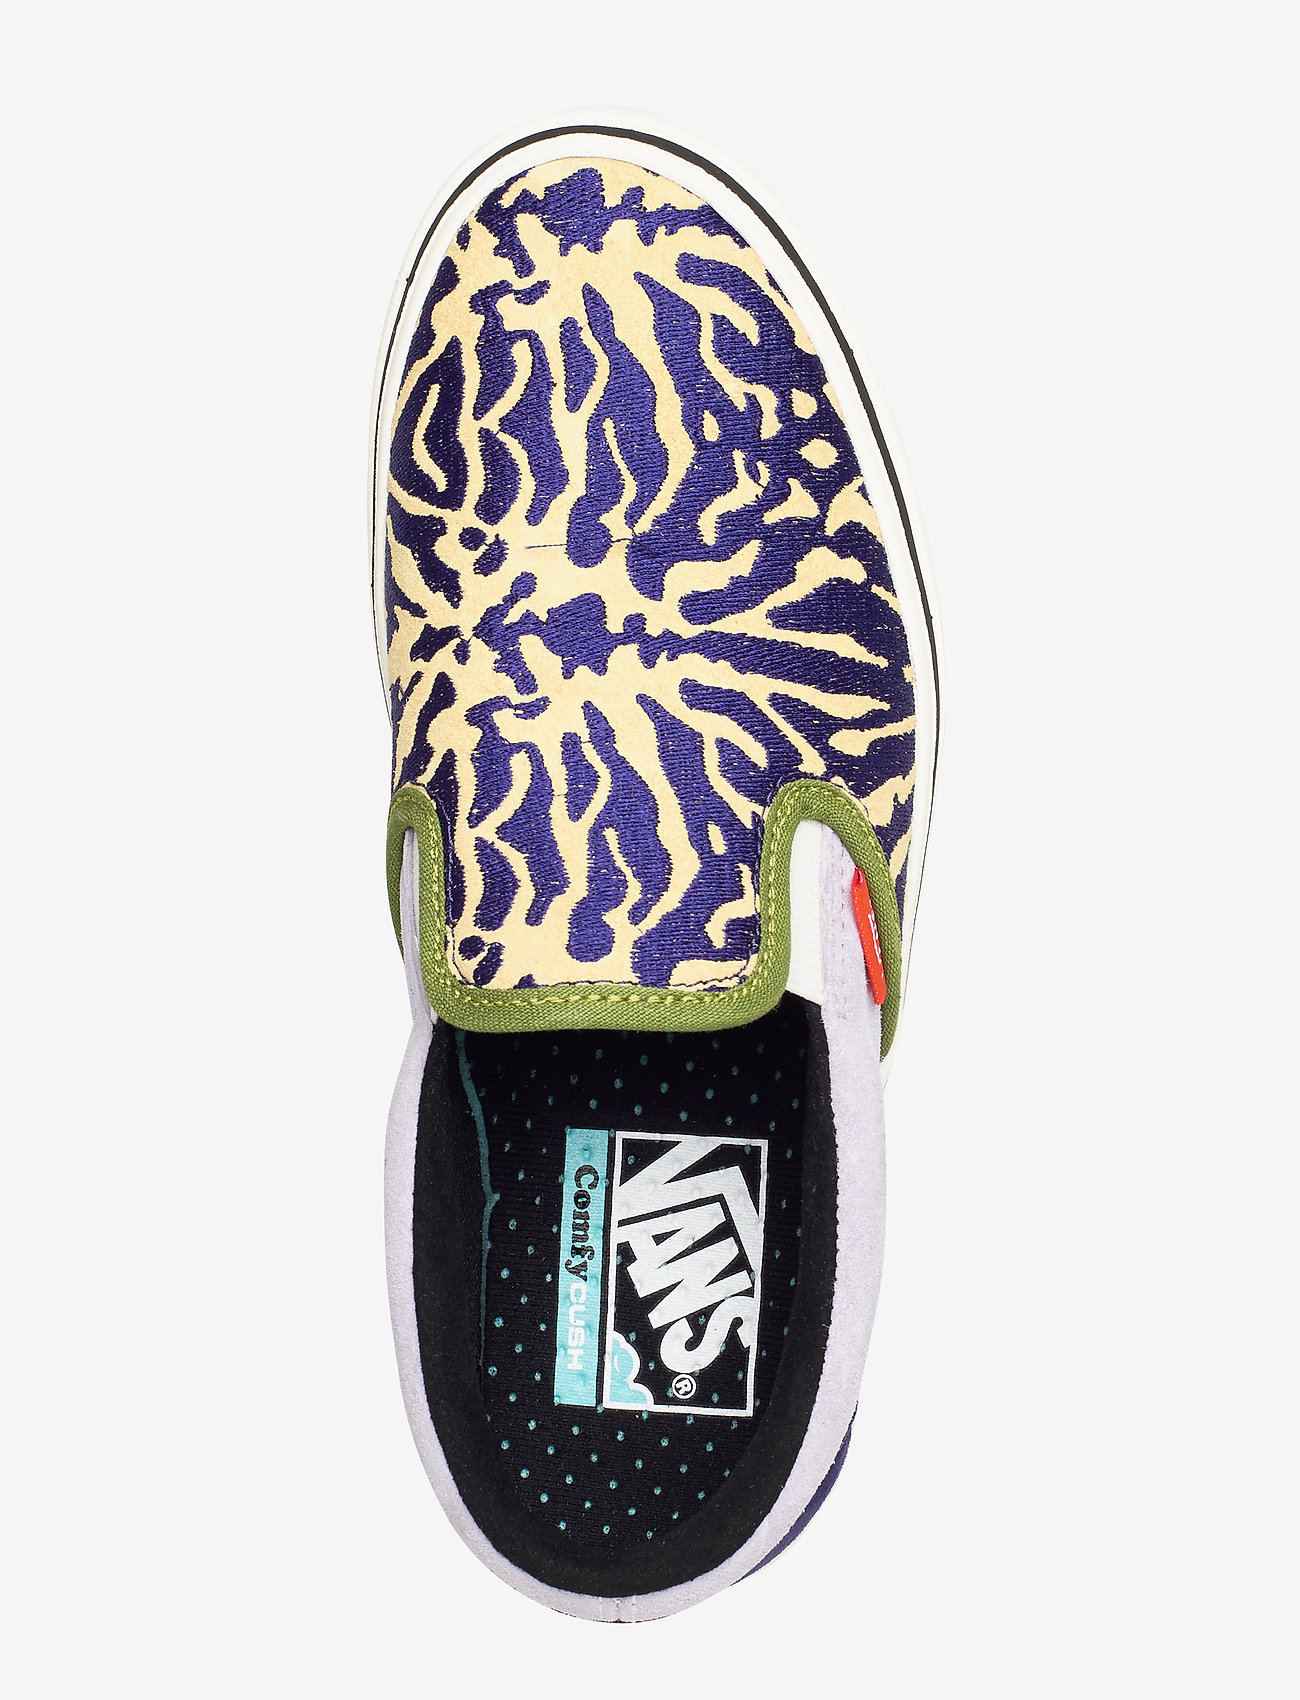 Ua Comfycush Slip-on ((bugs) Blueprint) - VANS